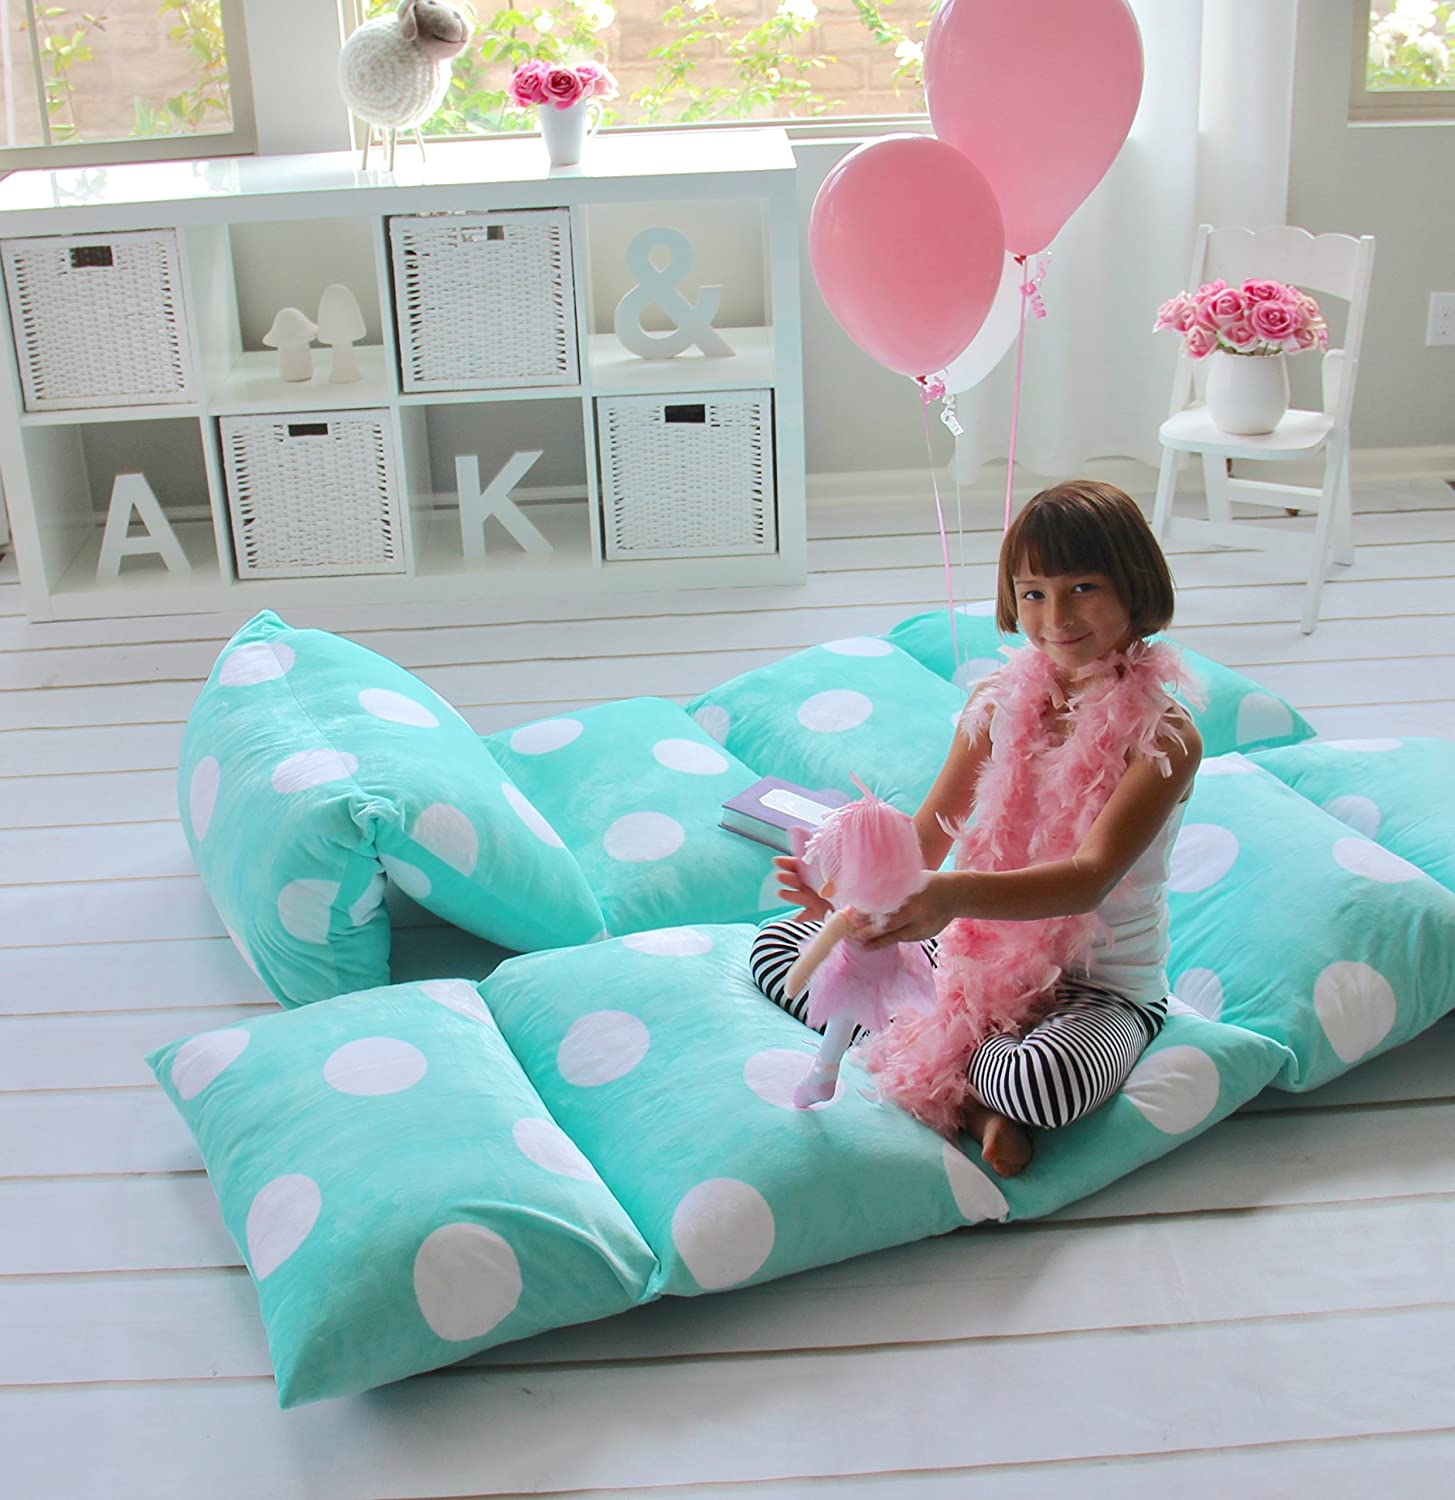 914Axt6H4rL. SL1500  - The Real Reason Behind Children Floor Cushion